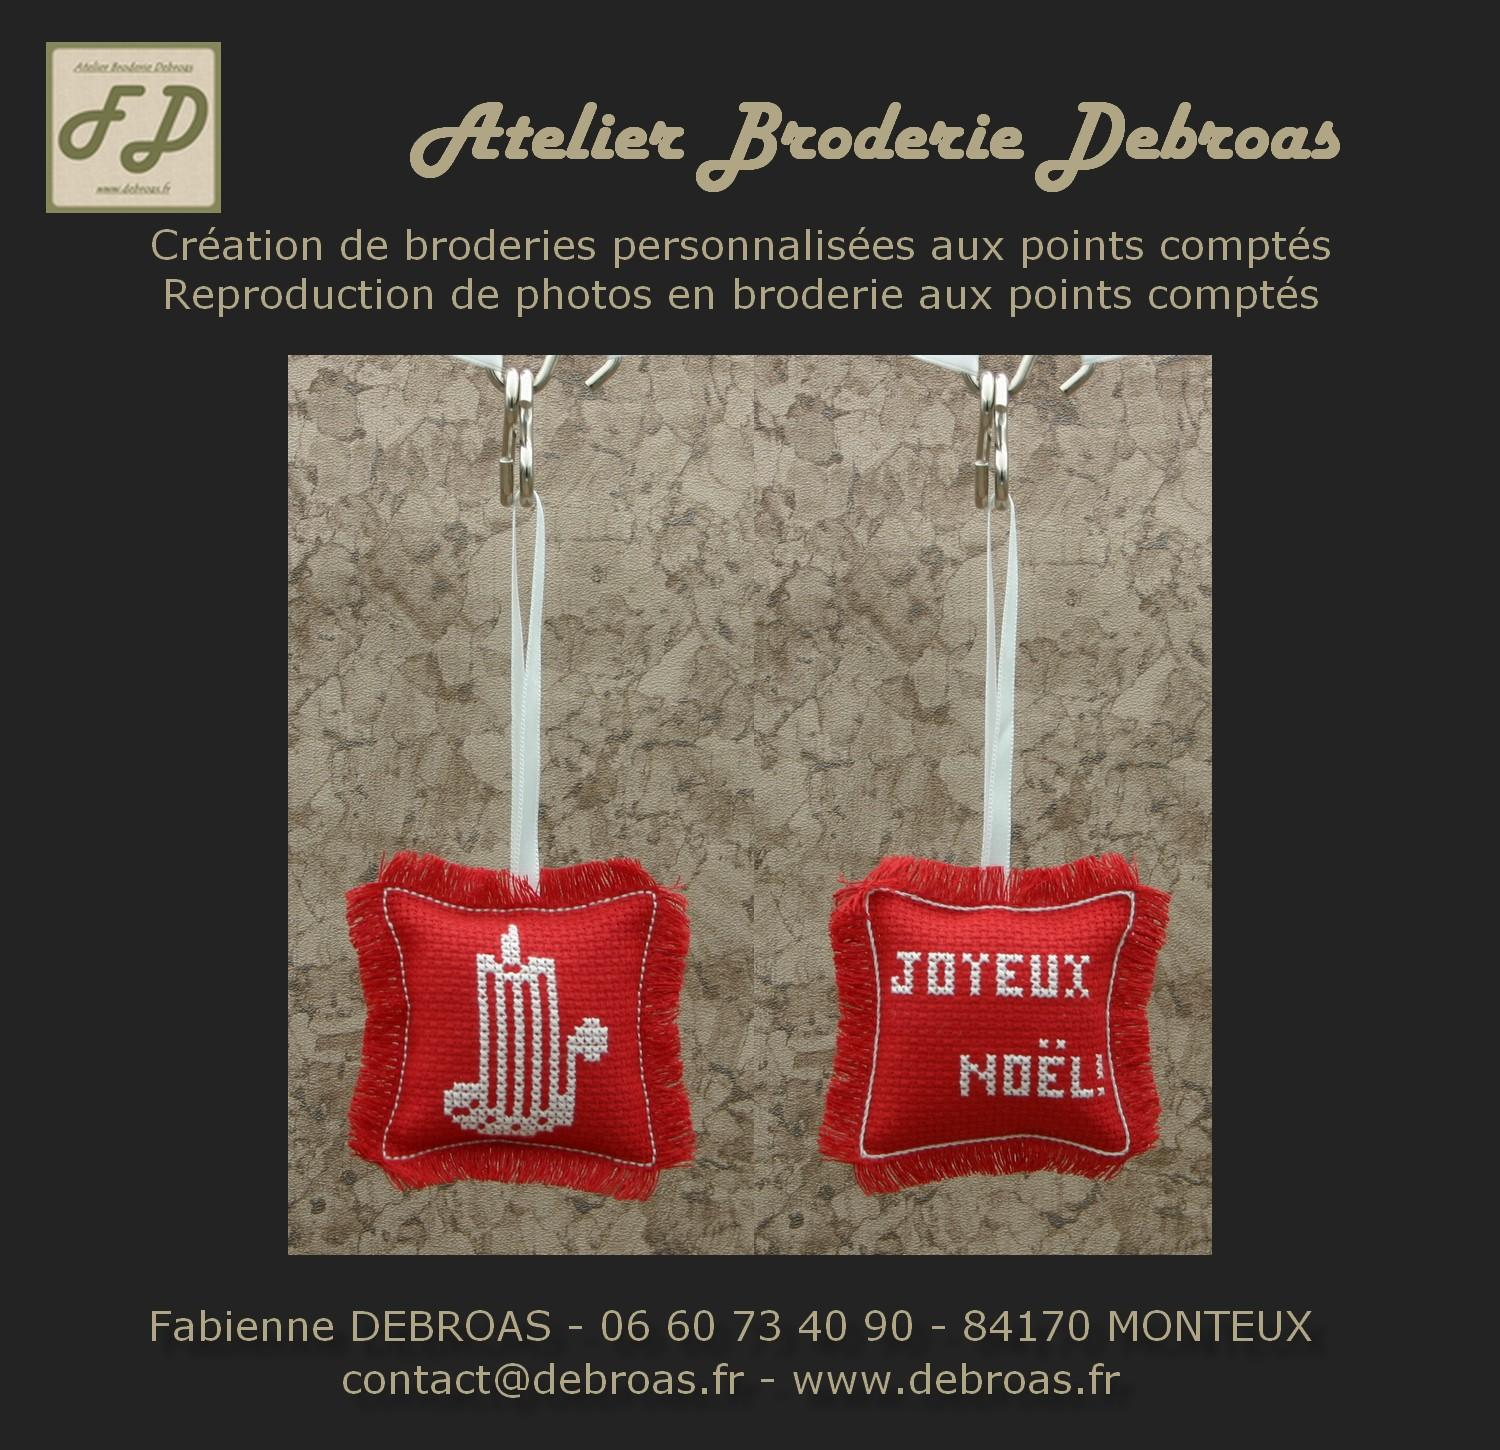 Sn03br bougie blanche sur rouge